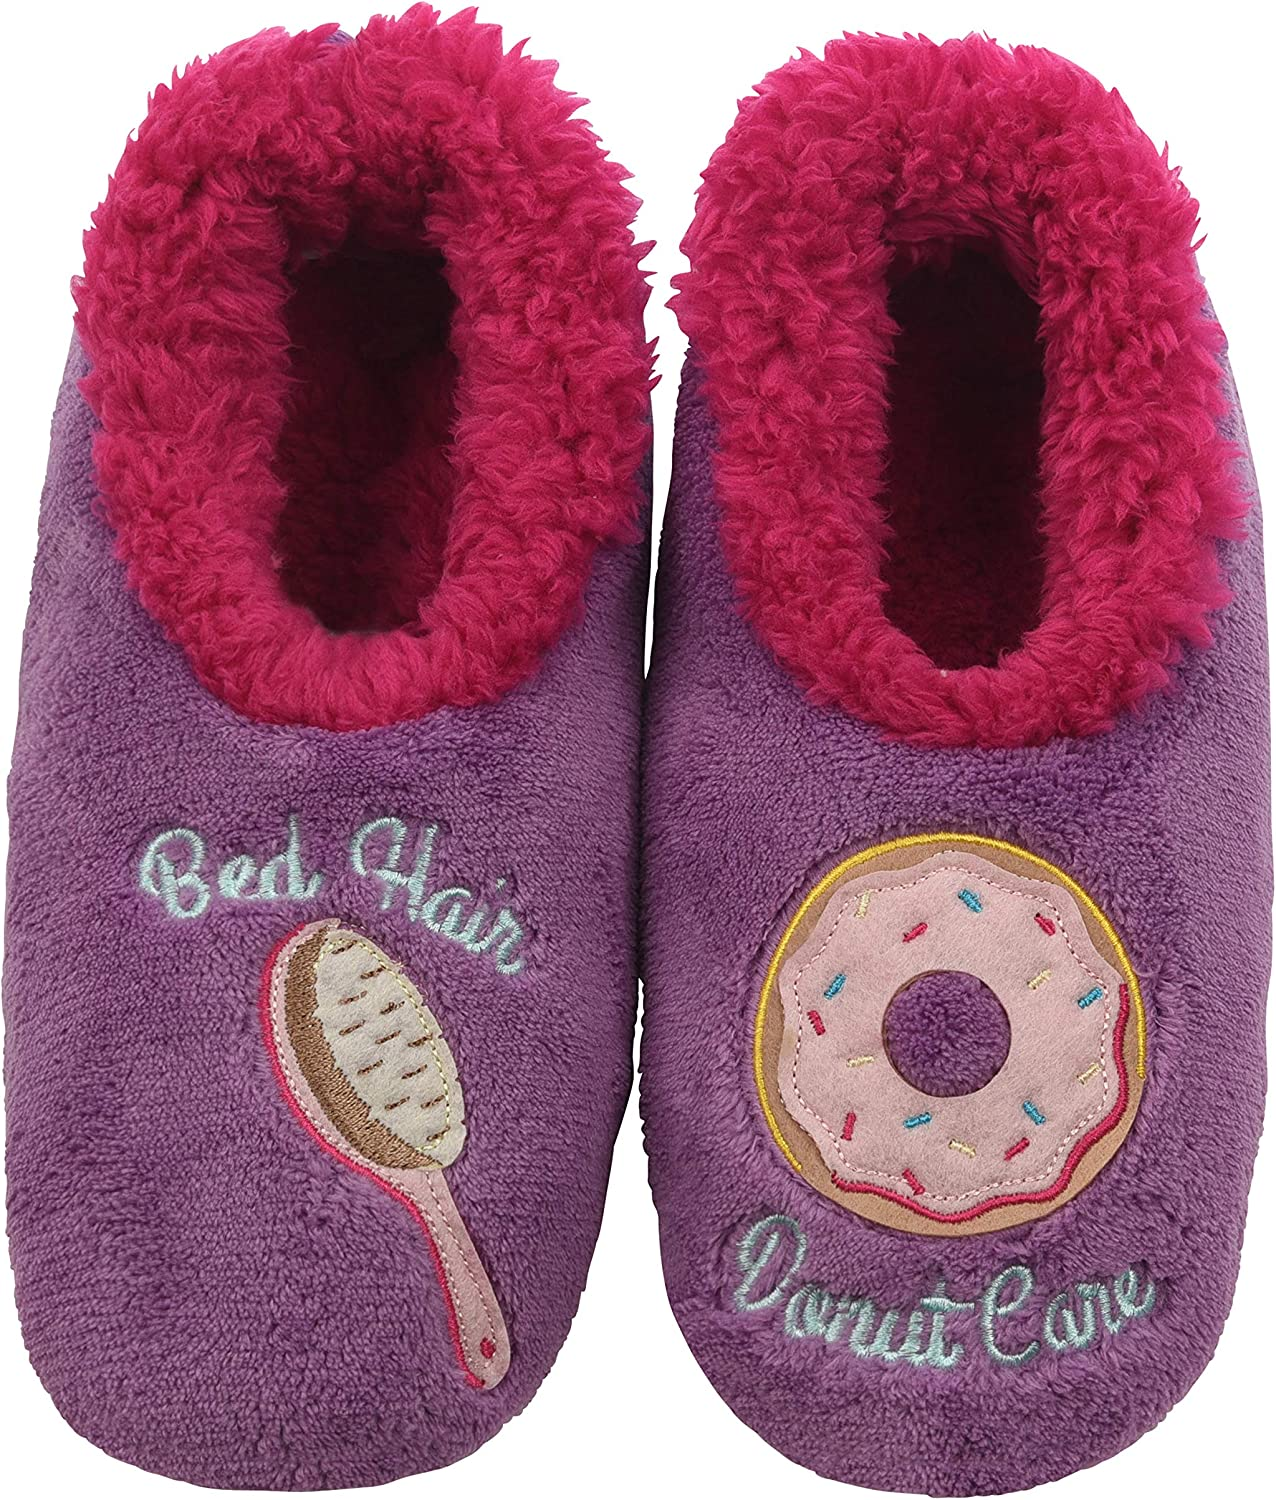 Snoozies Pairables Womens Slippers - House Slippers - Bed Hair/Donut Care